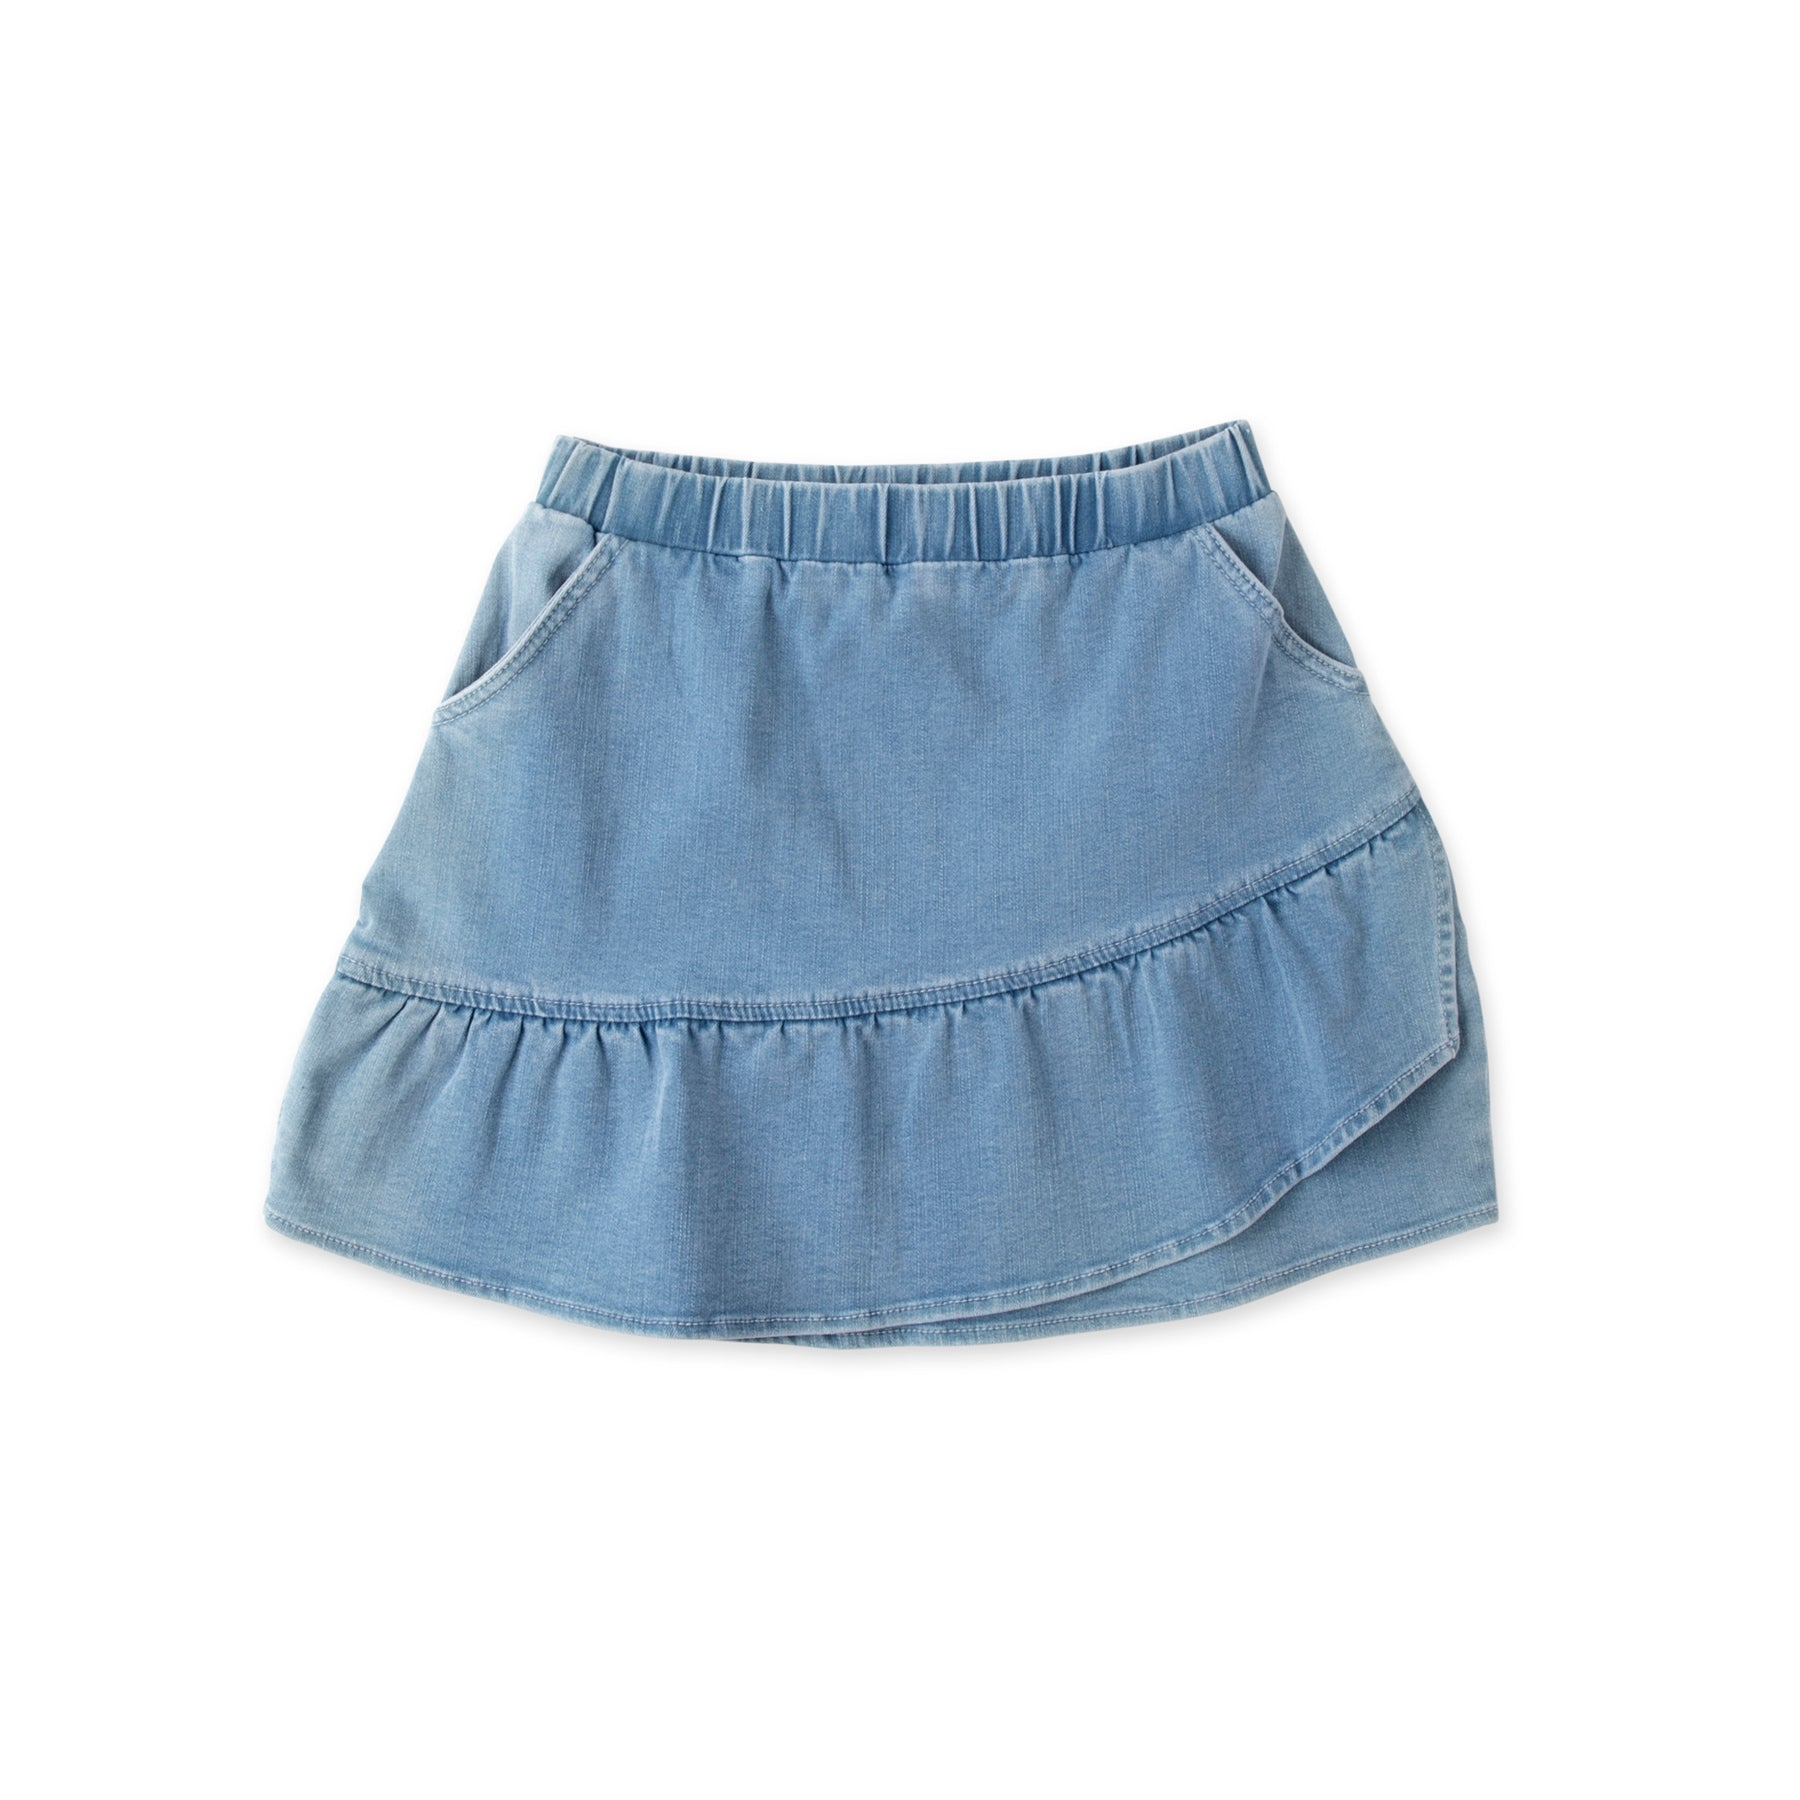 Frilled Denim Skirt